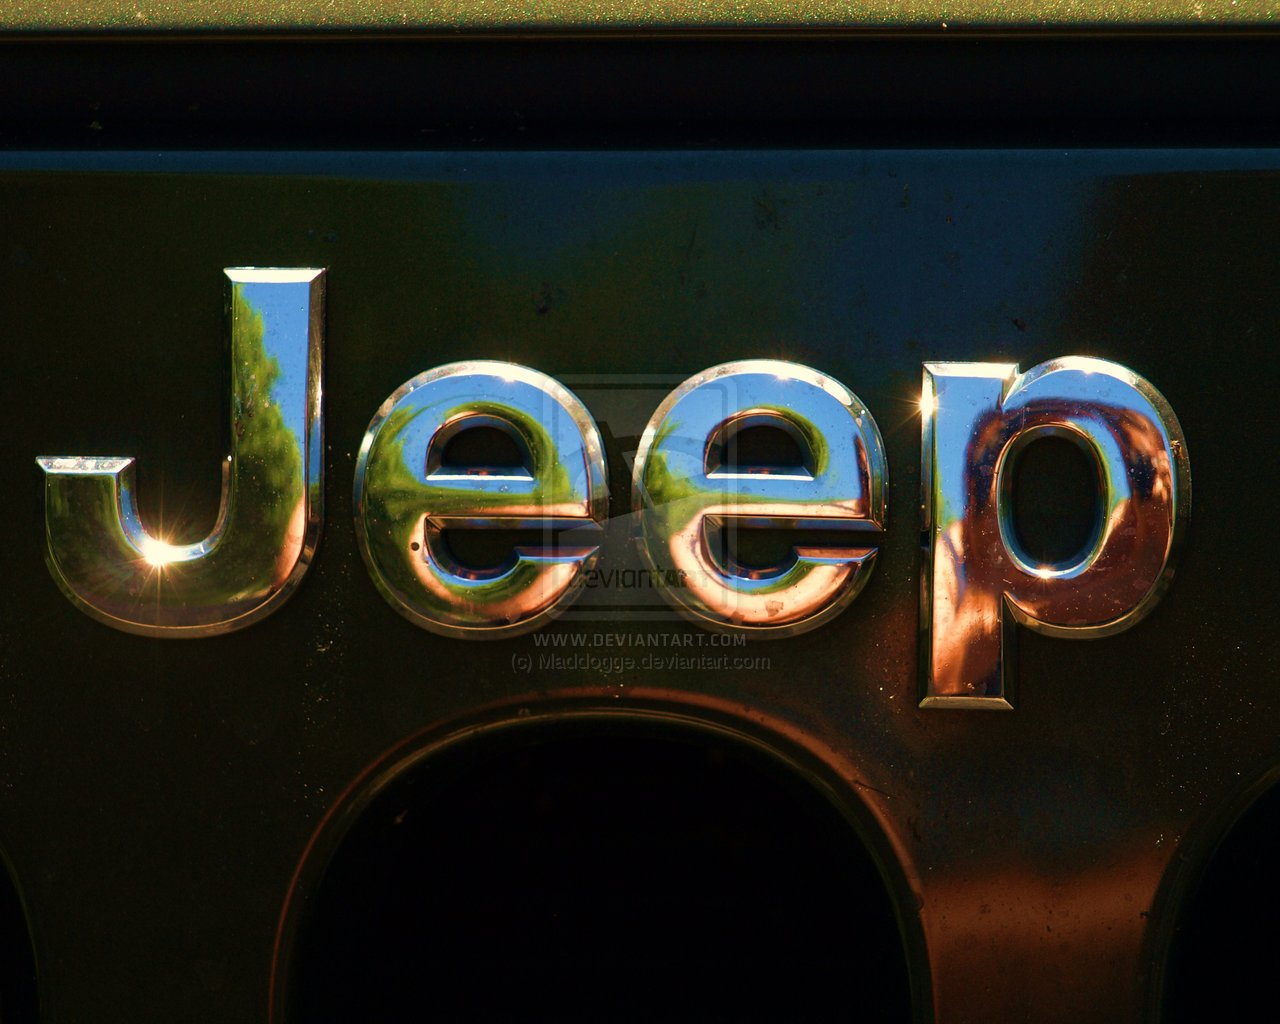 for jeep logo wallpaper displaying 10 images for jeep logo wallpaper 1280x1024